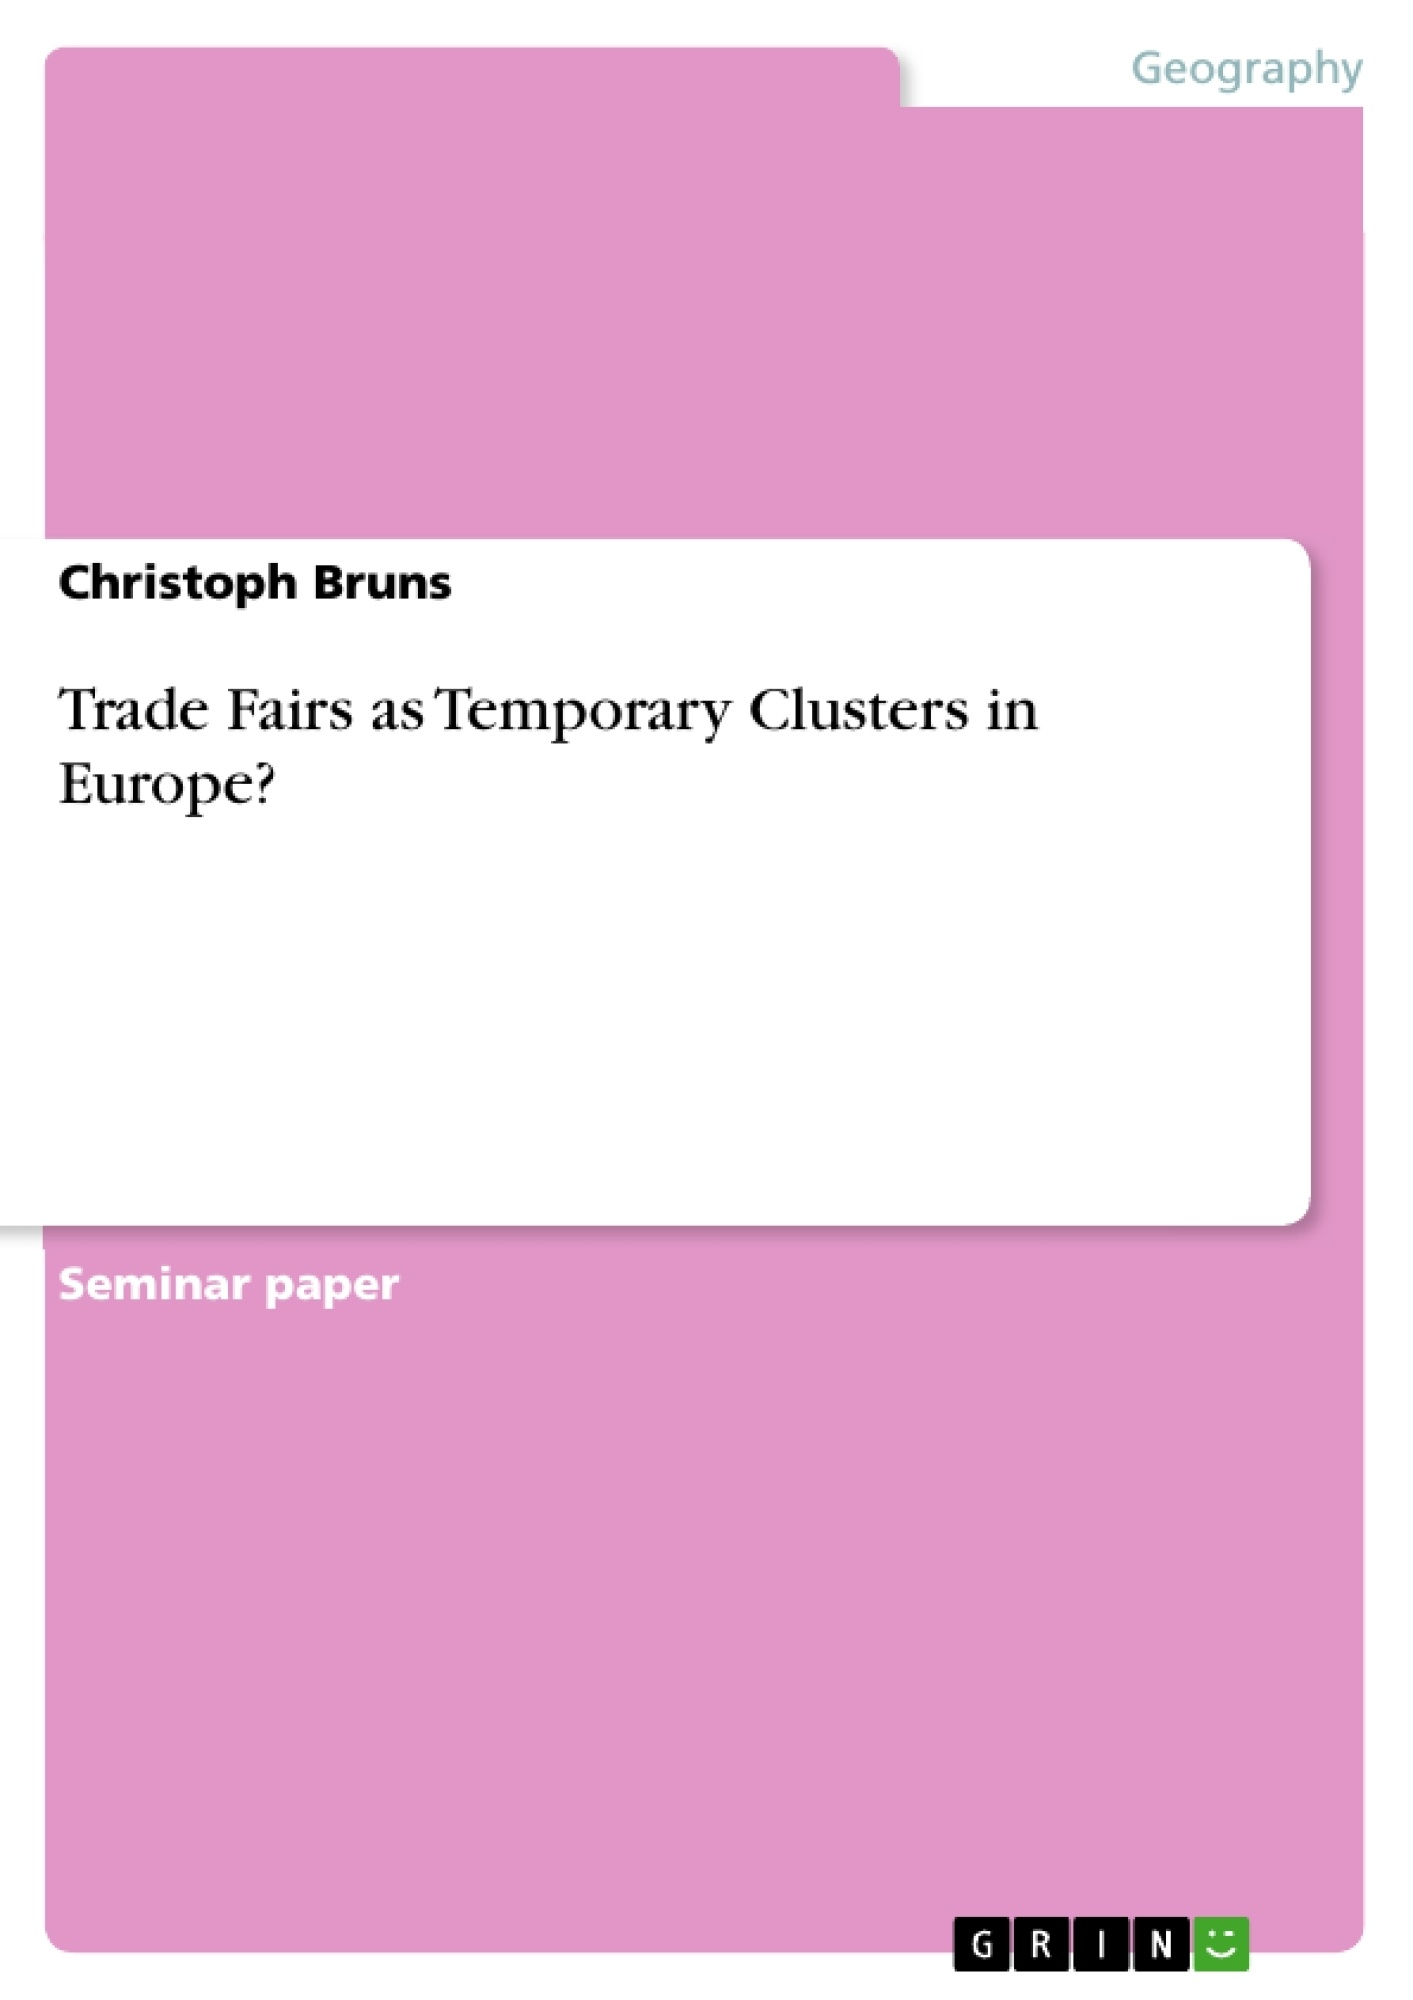 Title: Trade Fairs as Temporary Clusters in Europe?